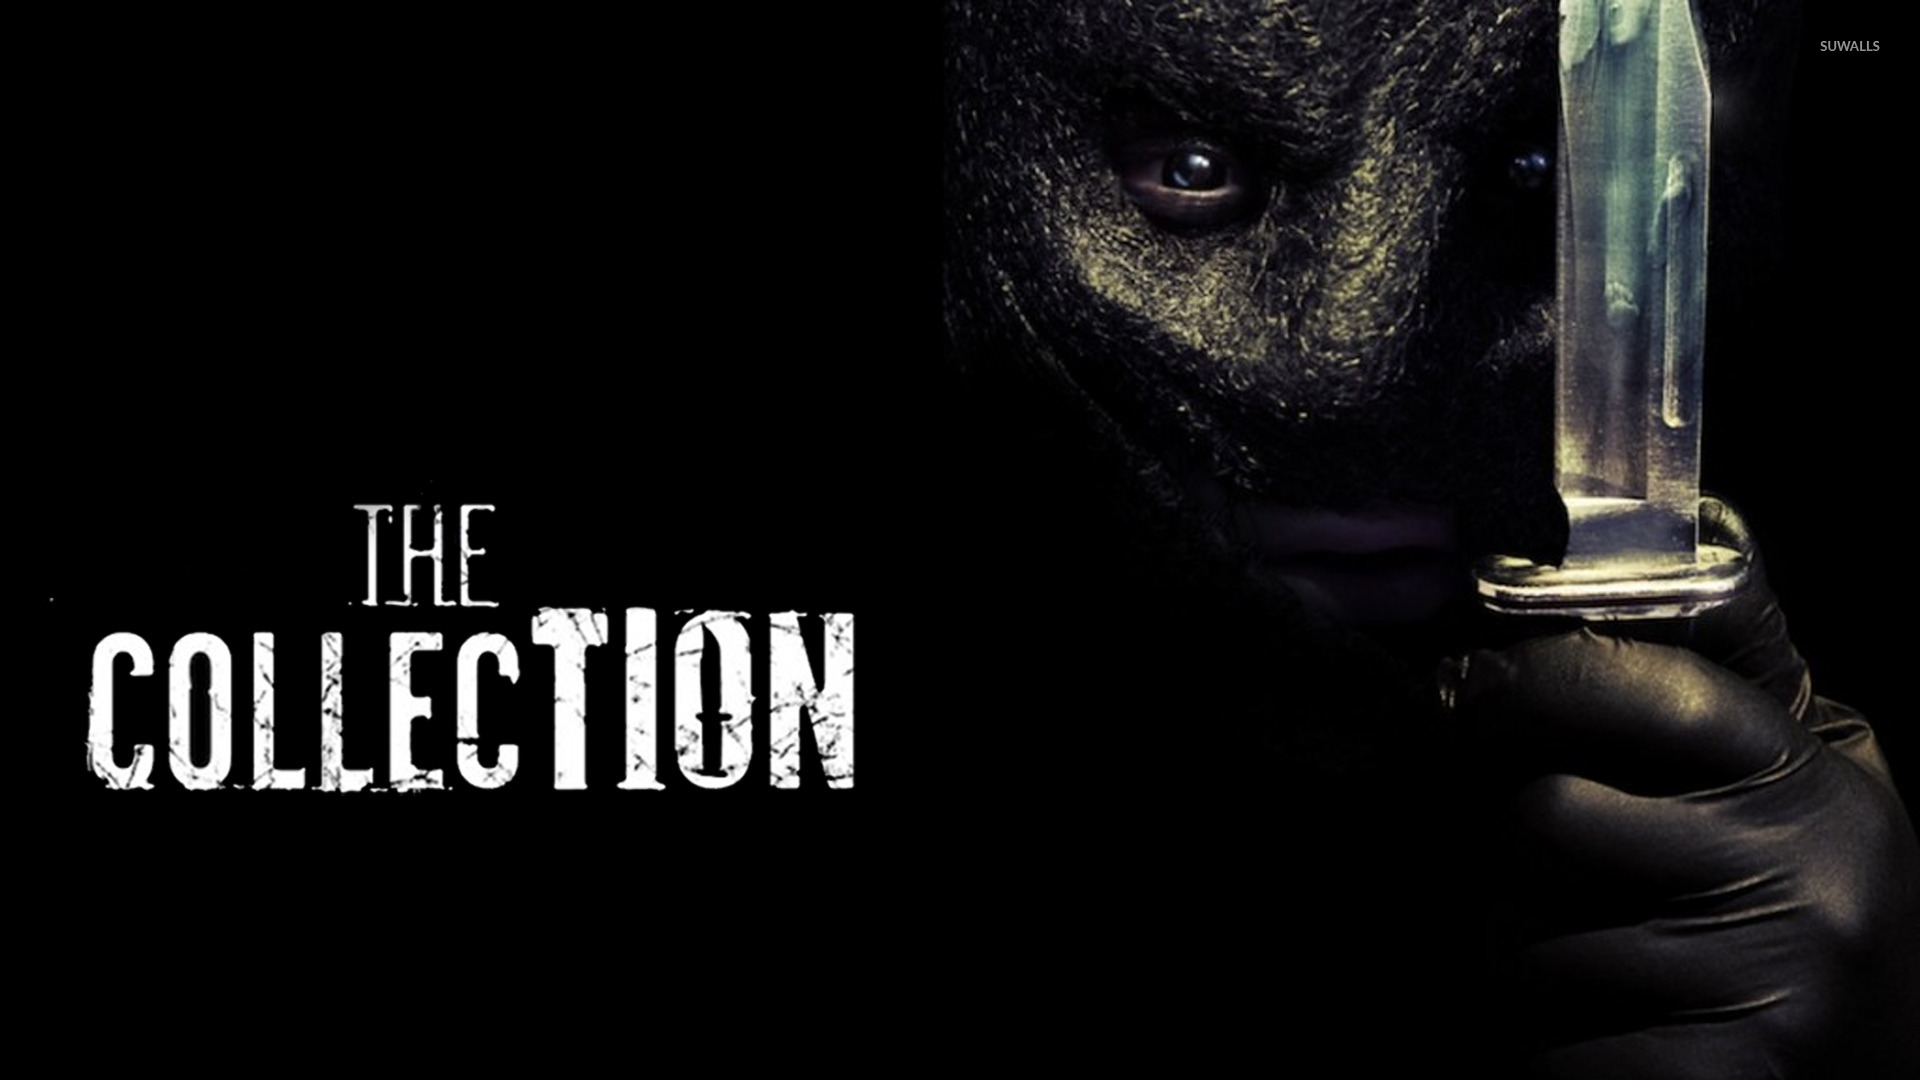 The Collector - The Collection wallpaper - Movie wallpapers - #16339